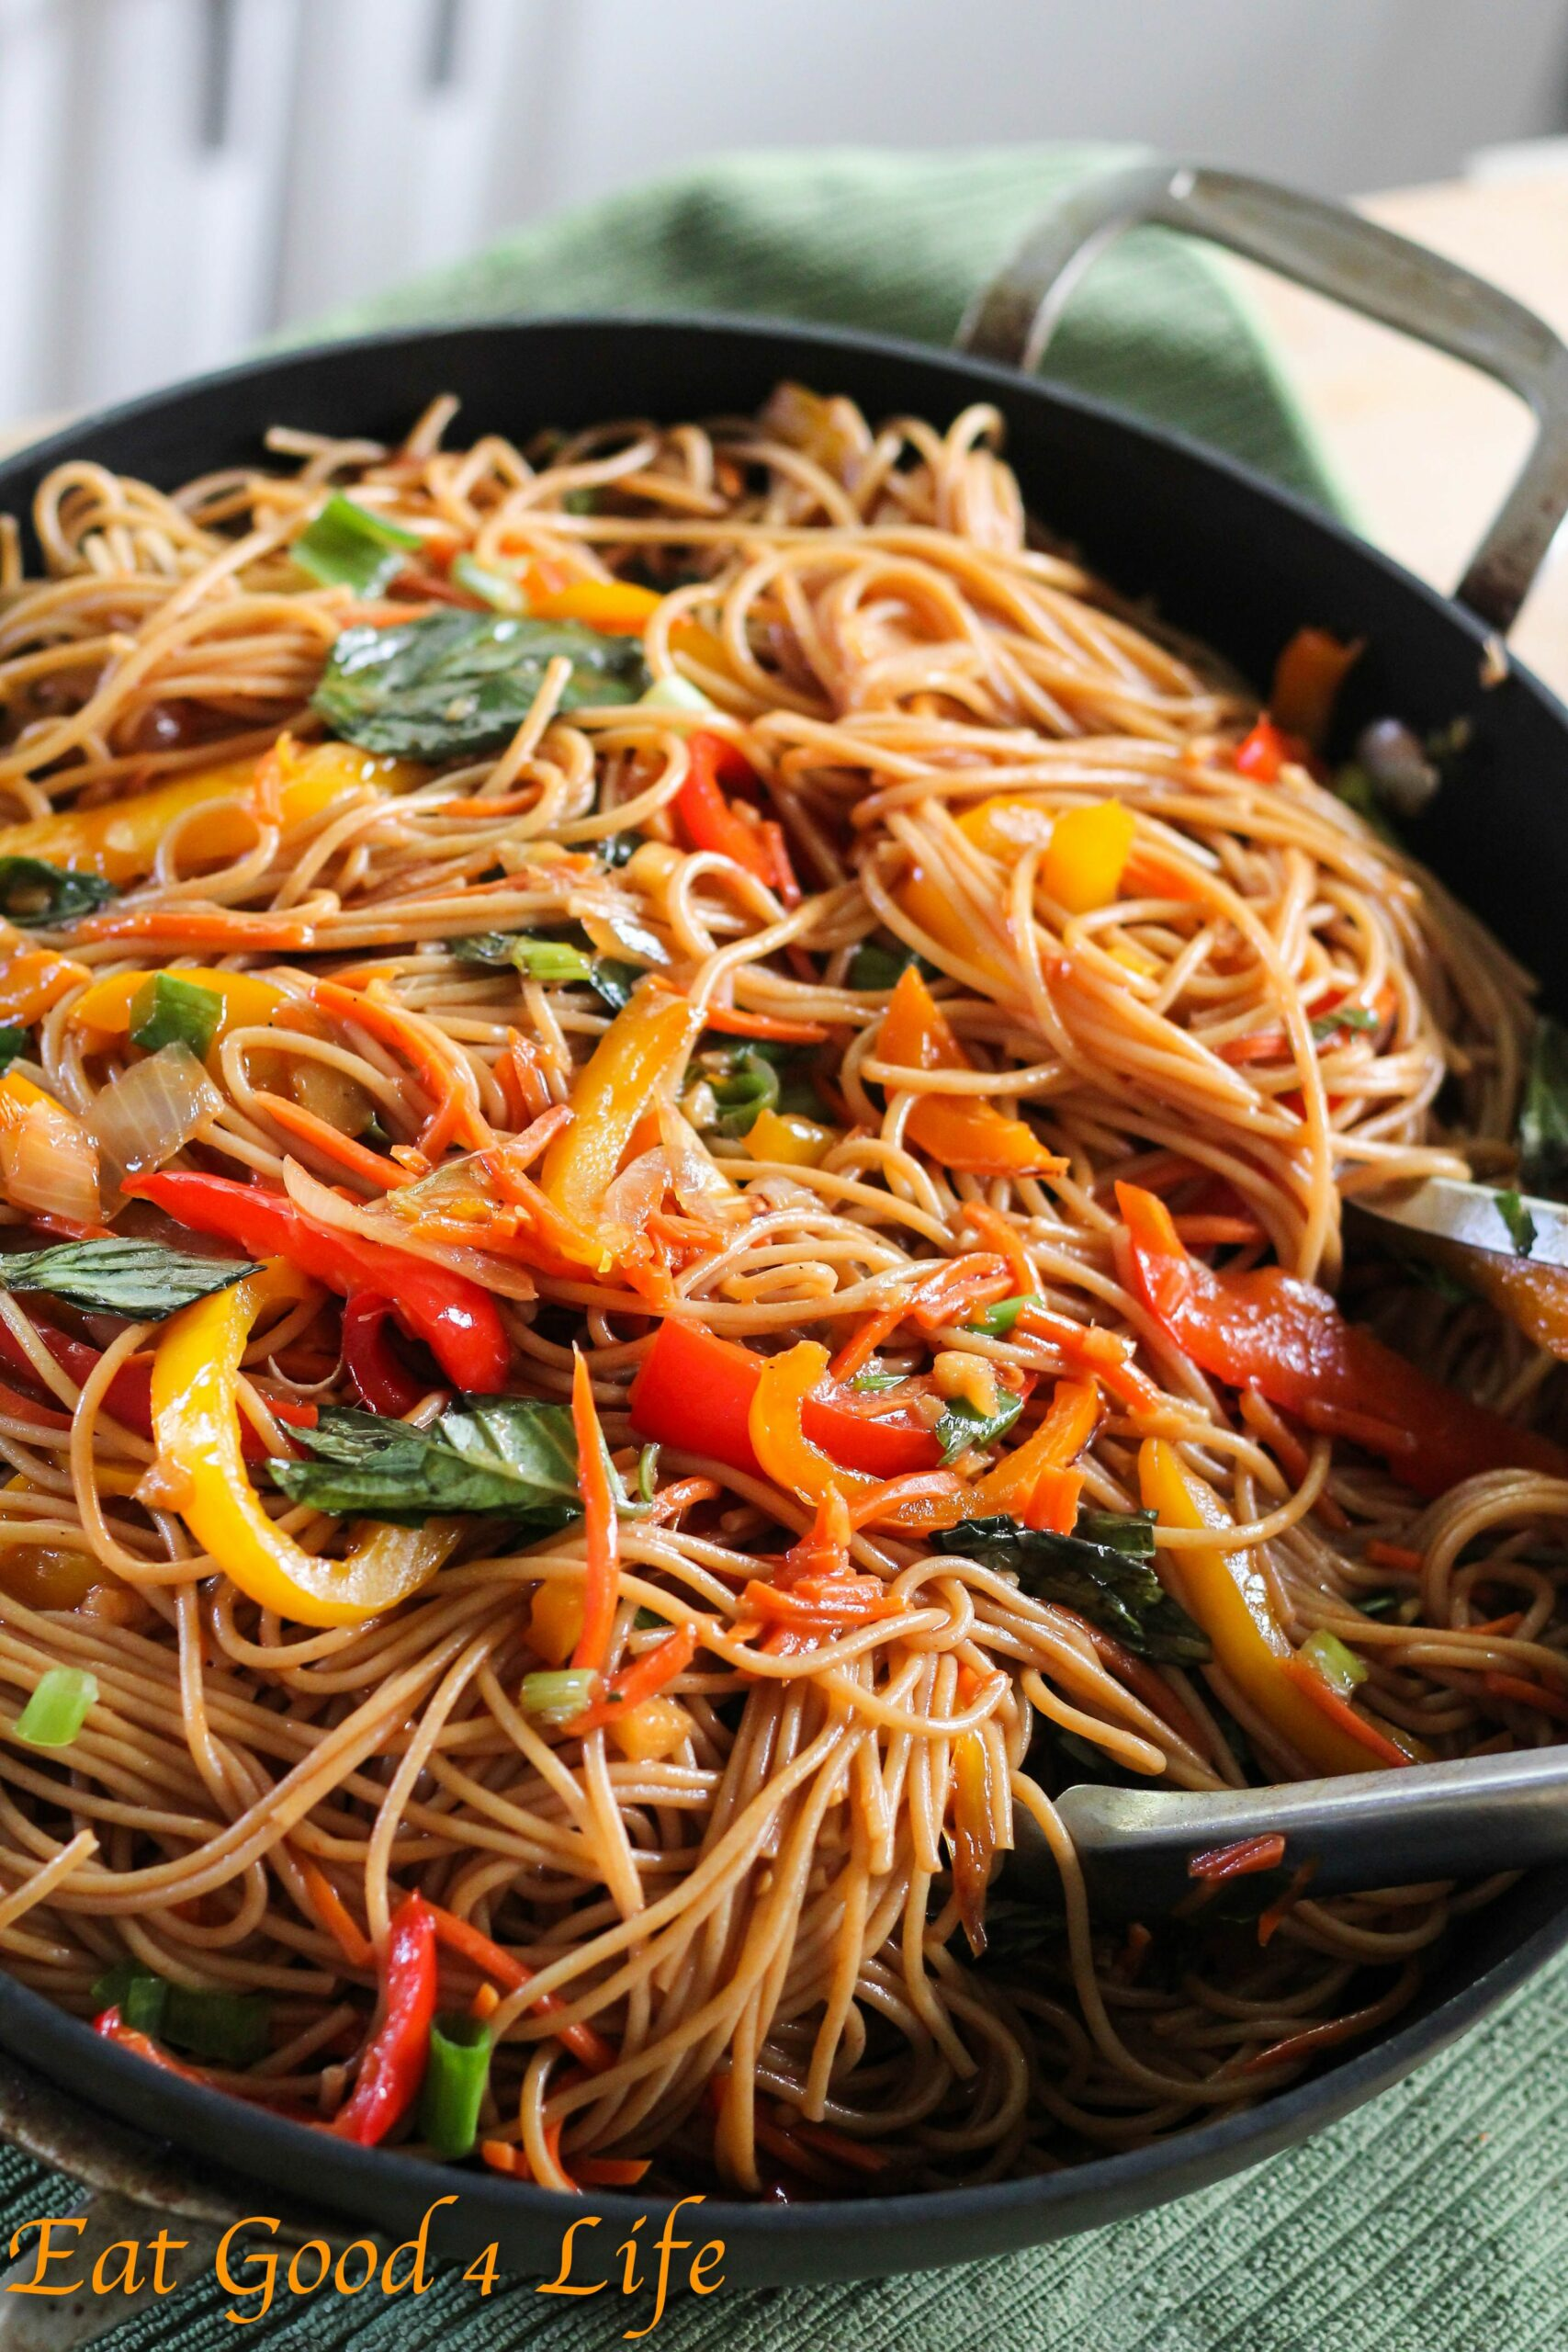 Vegetable Lo Mein - Recipes Vegetable Lo Mein